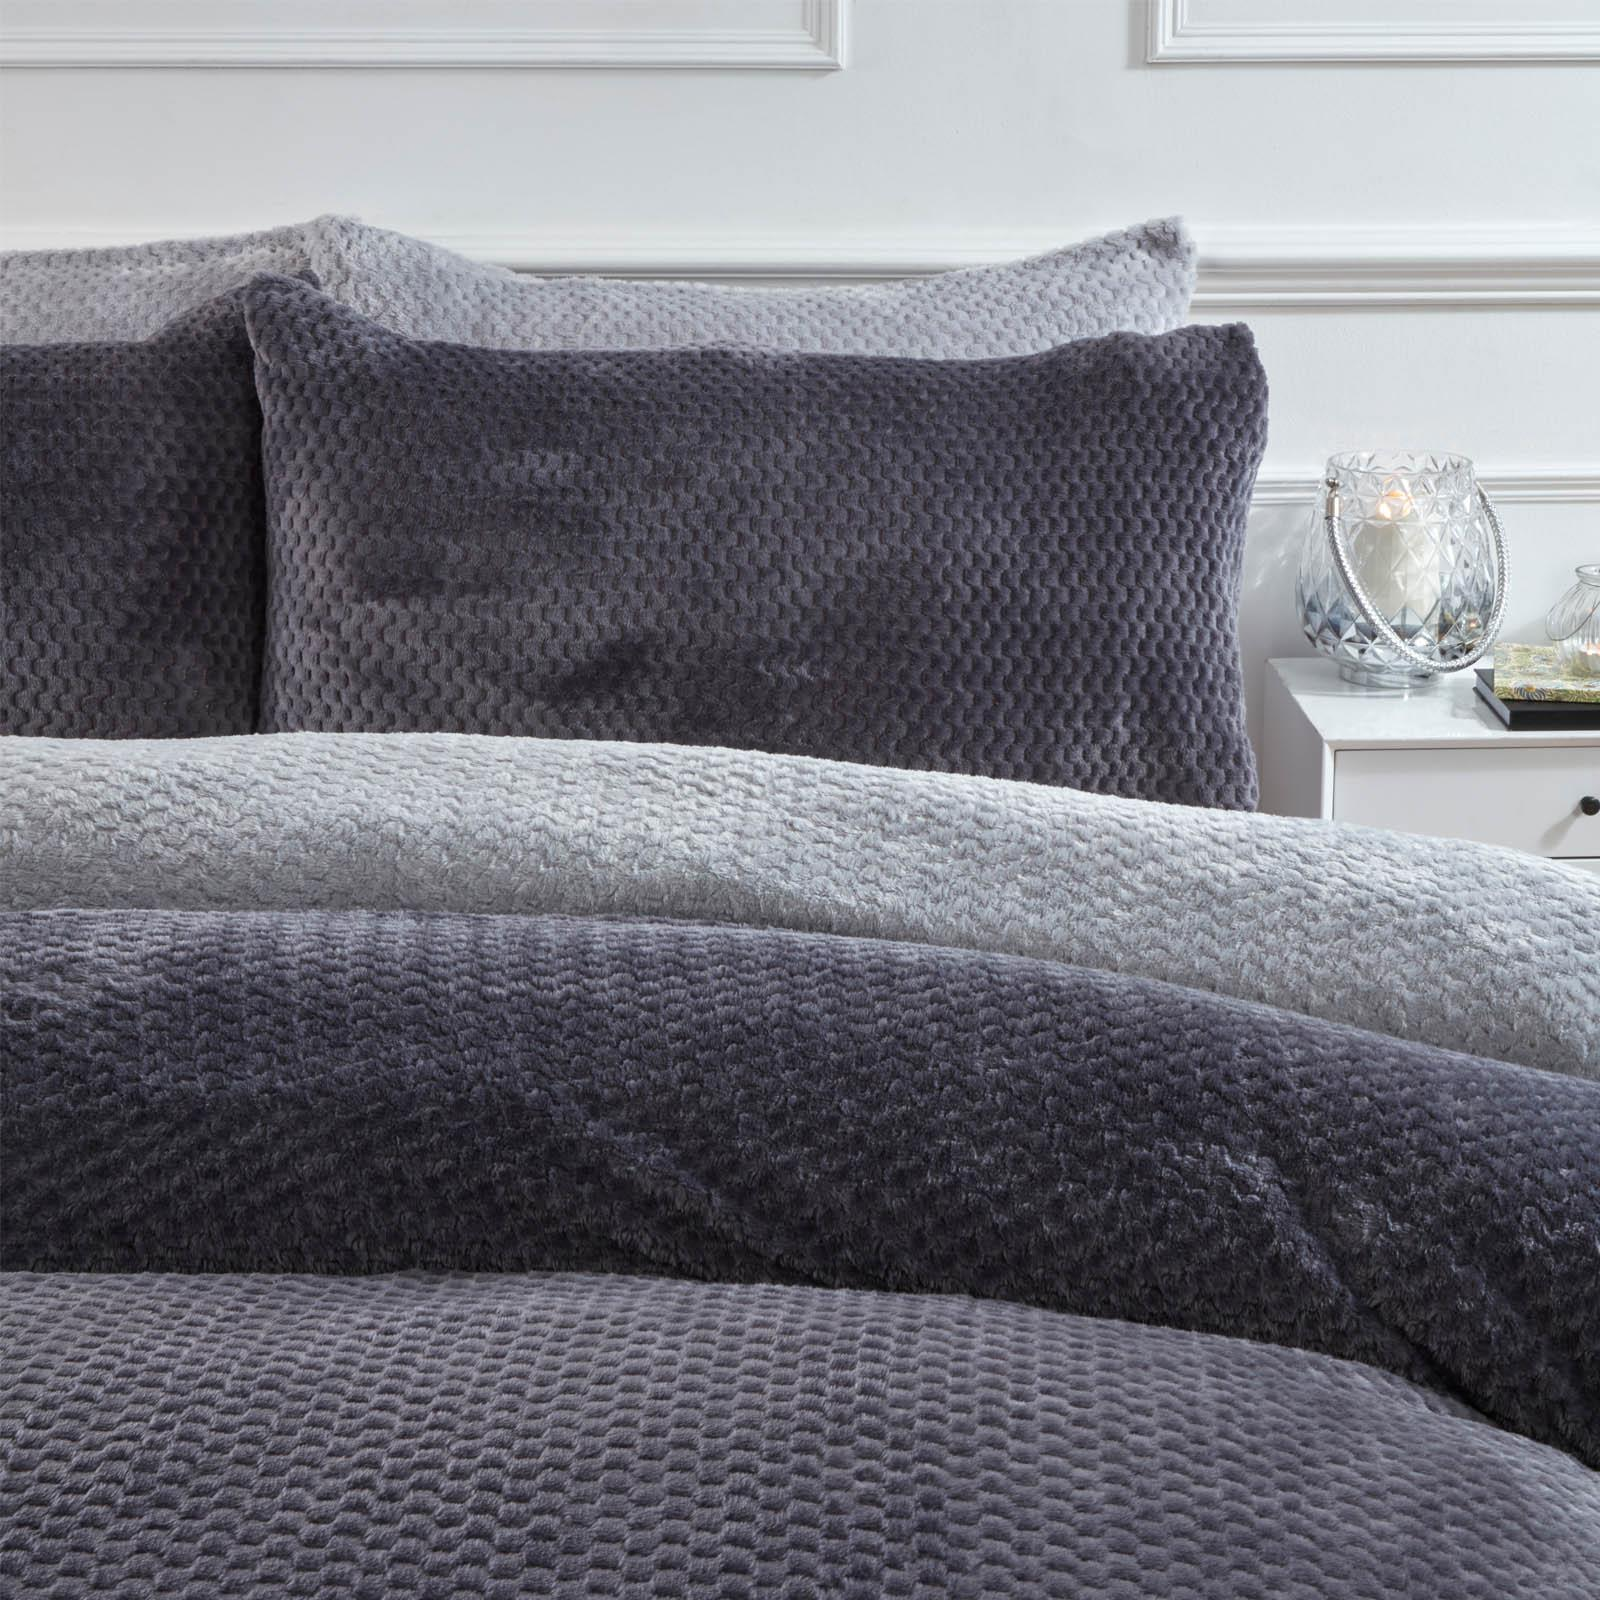 Brentfords-Warm-Waffle-Fleece-Duvet-Cover-with-Pillowcase-Soft-Cosy-Bedding-Set thumbnail 12